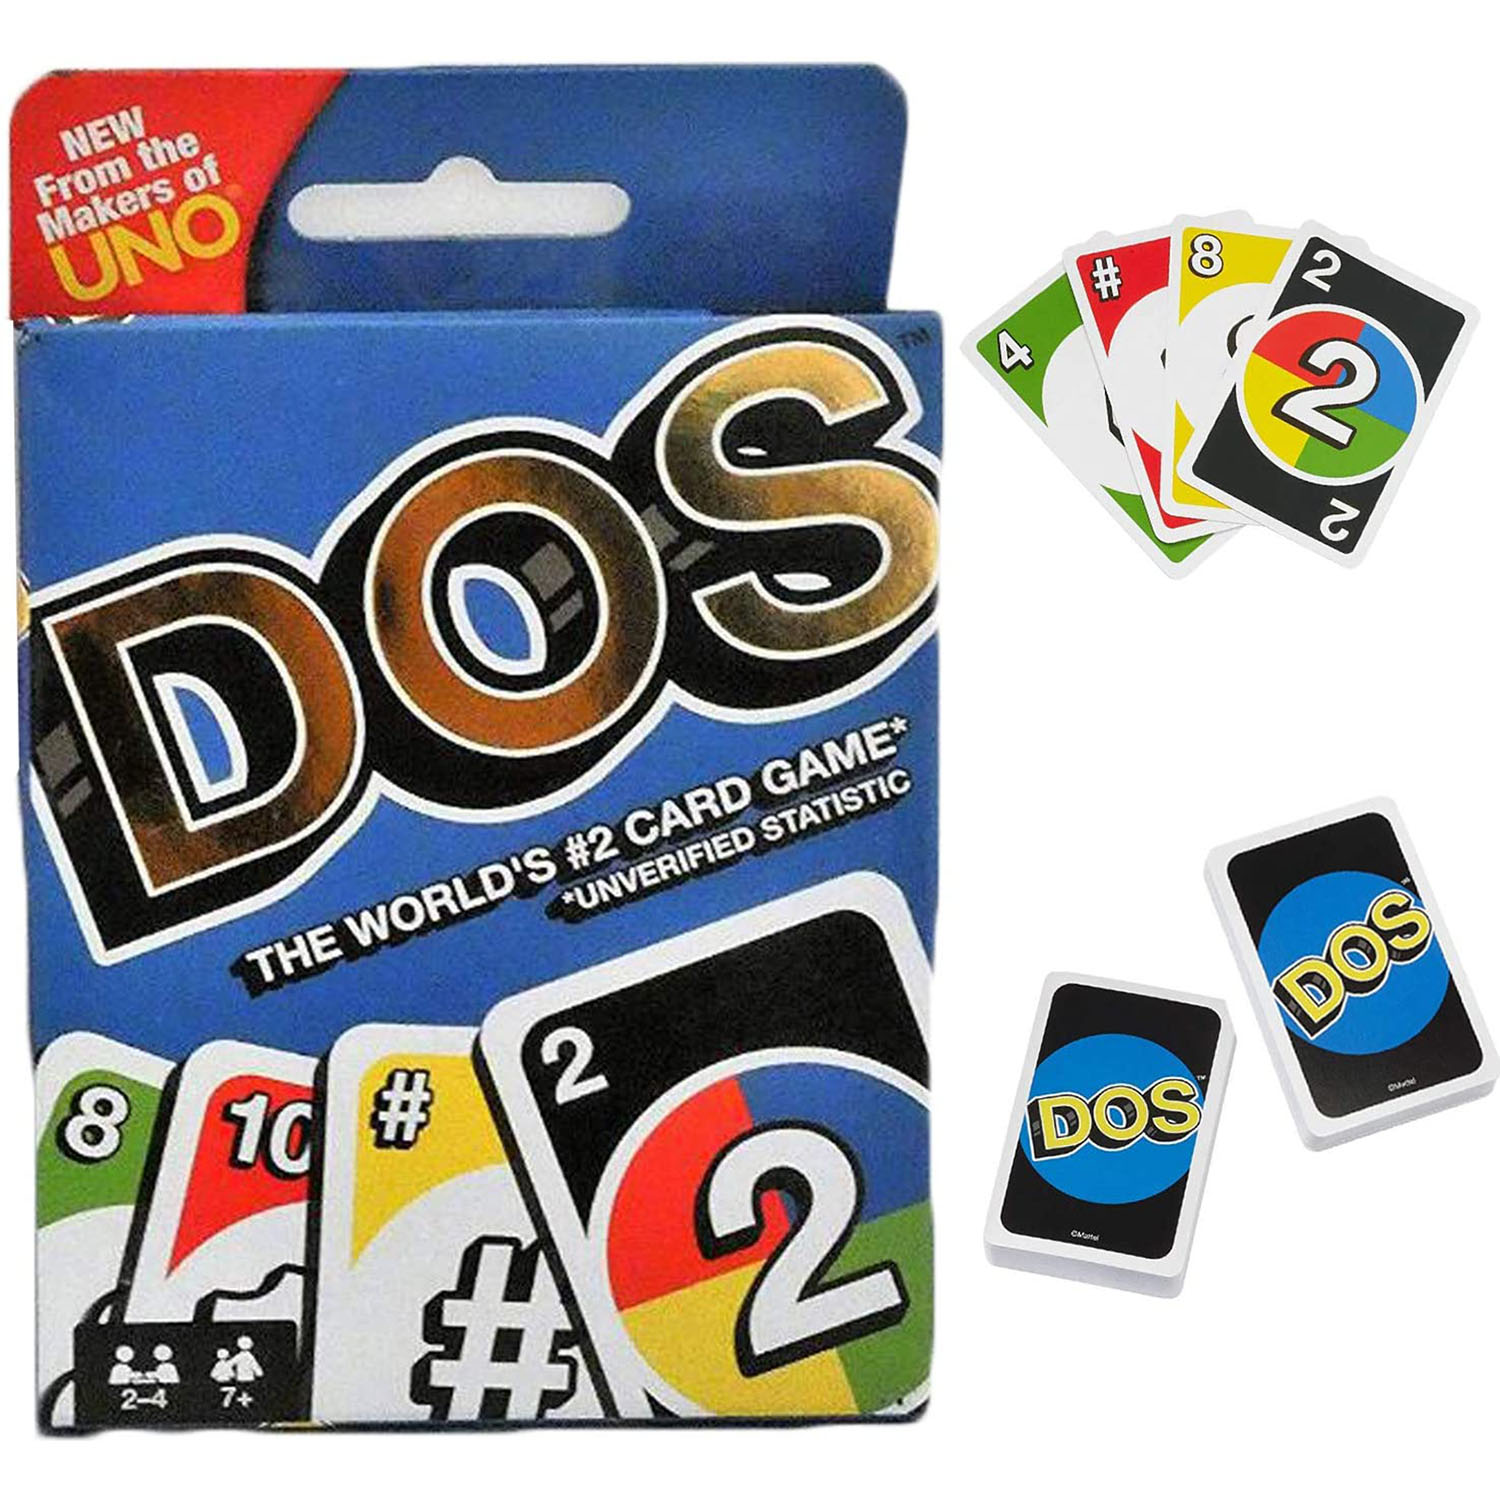 UNO : Dos - Card Game Family Party Board Game Toys Fun The World's #2 Card Game Unverified Statistic